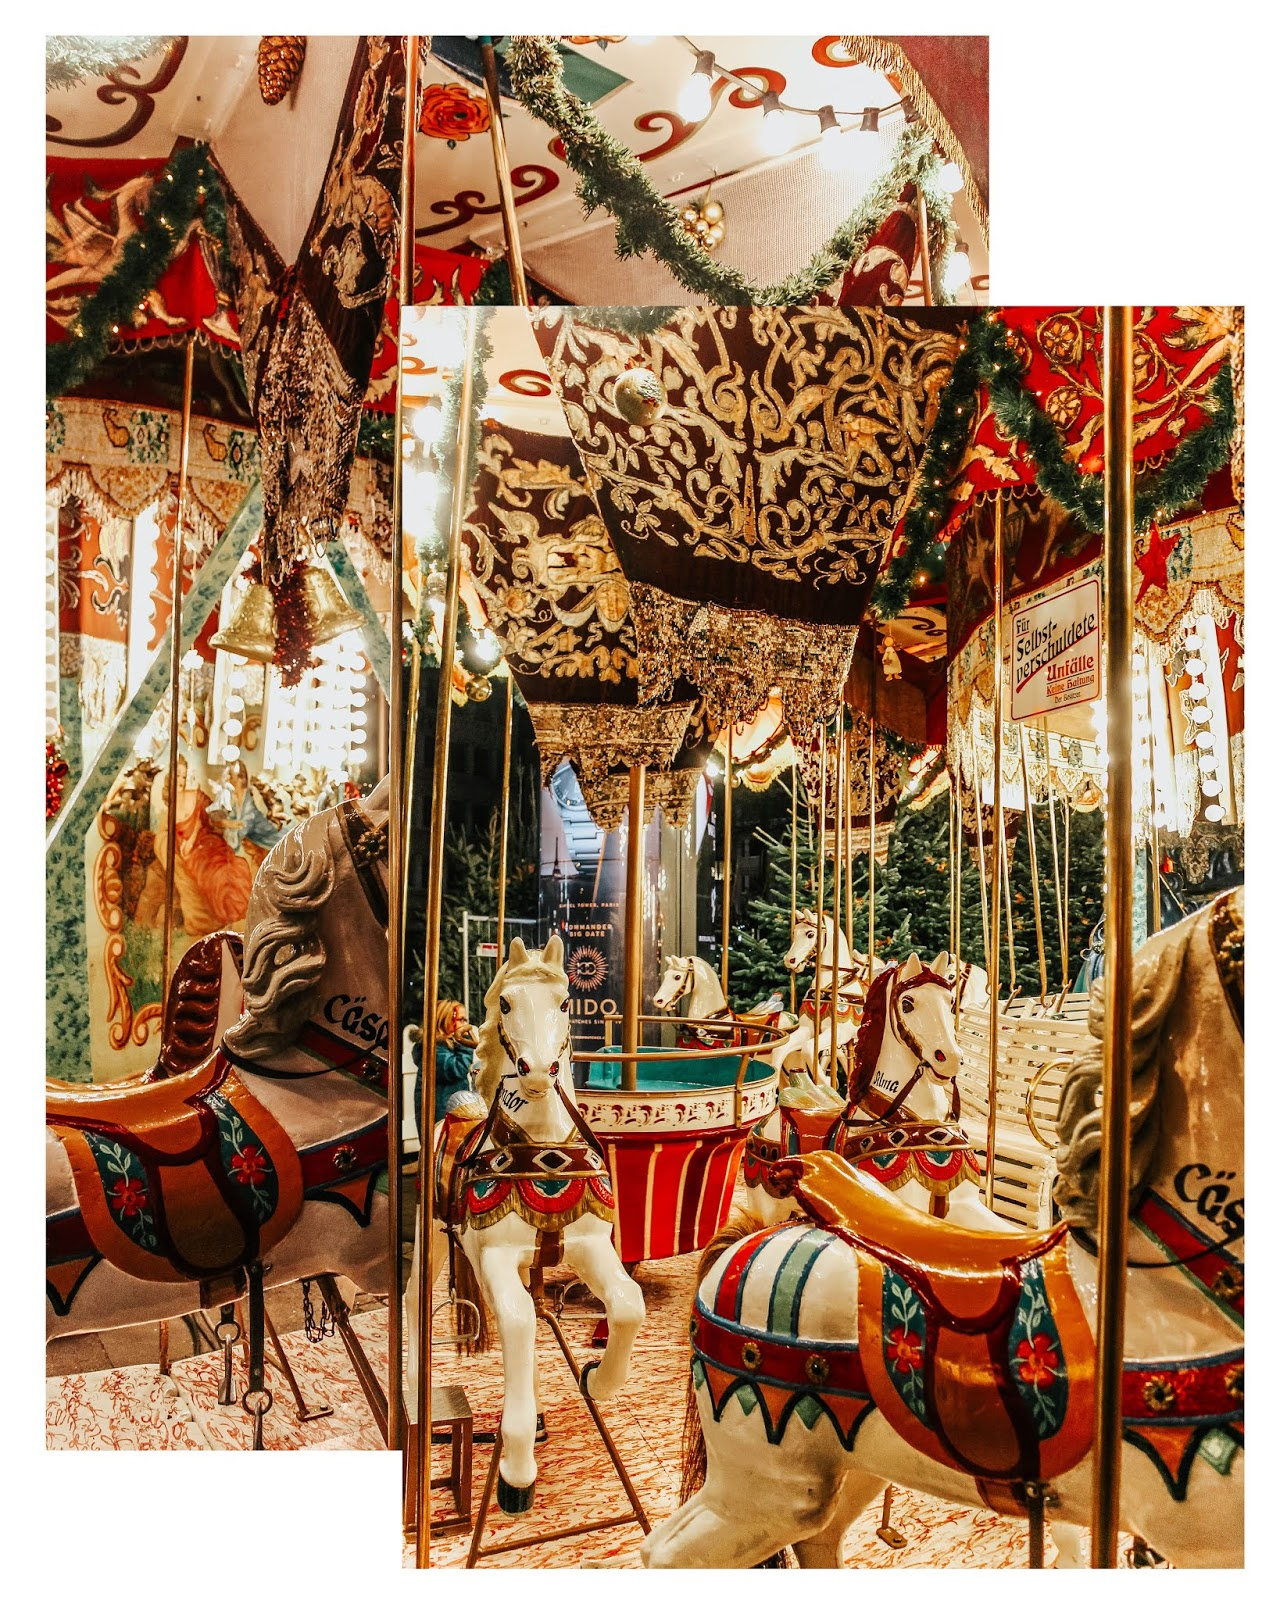 Germany Cologne Markt der Engels Christmas Carousel